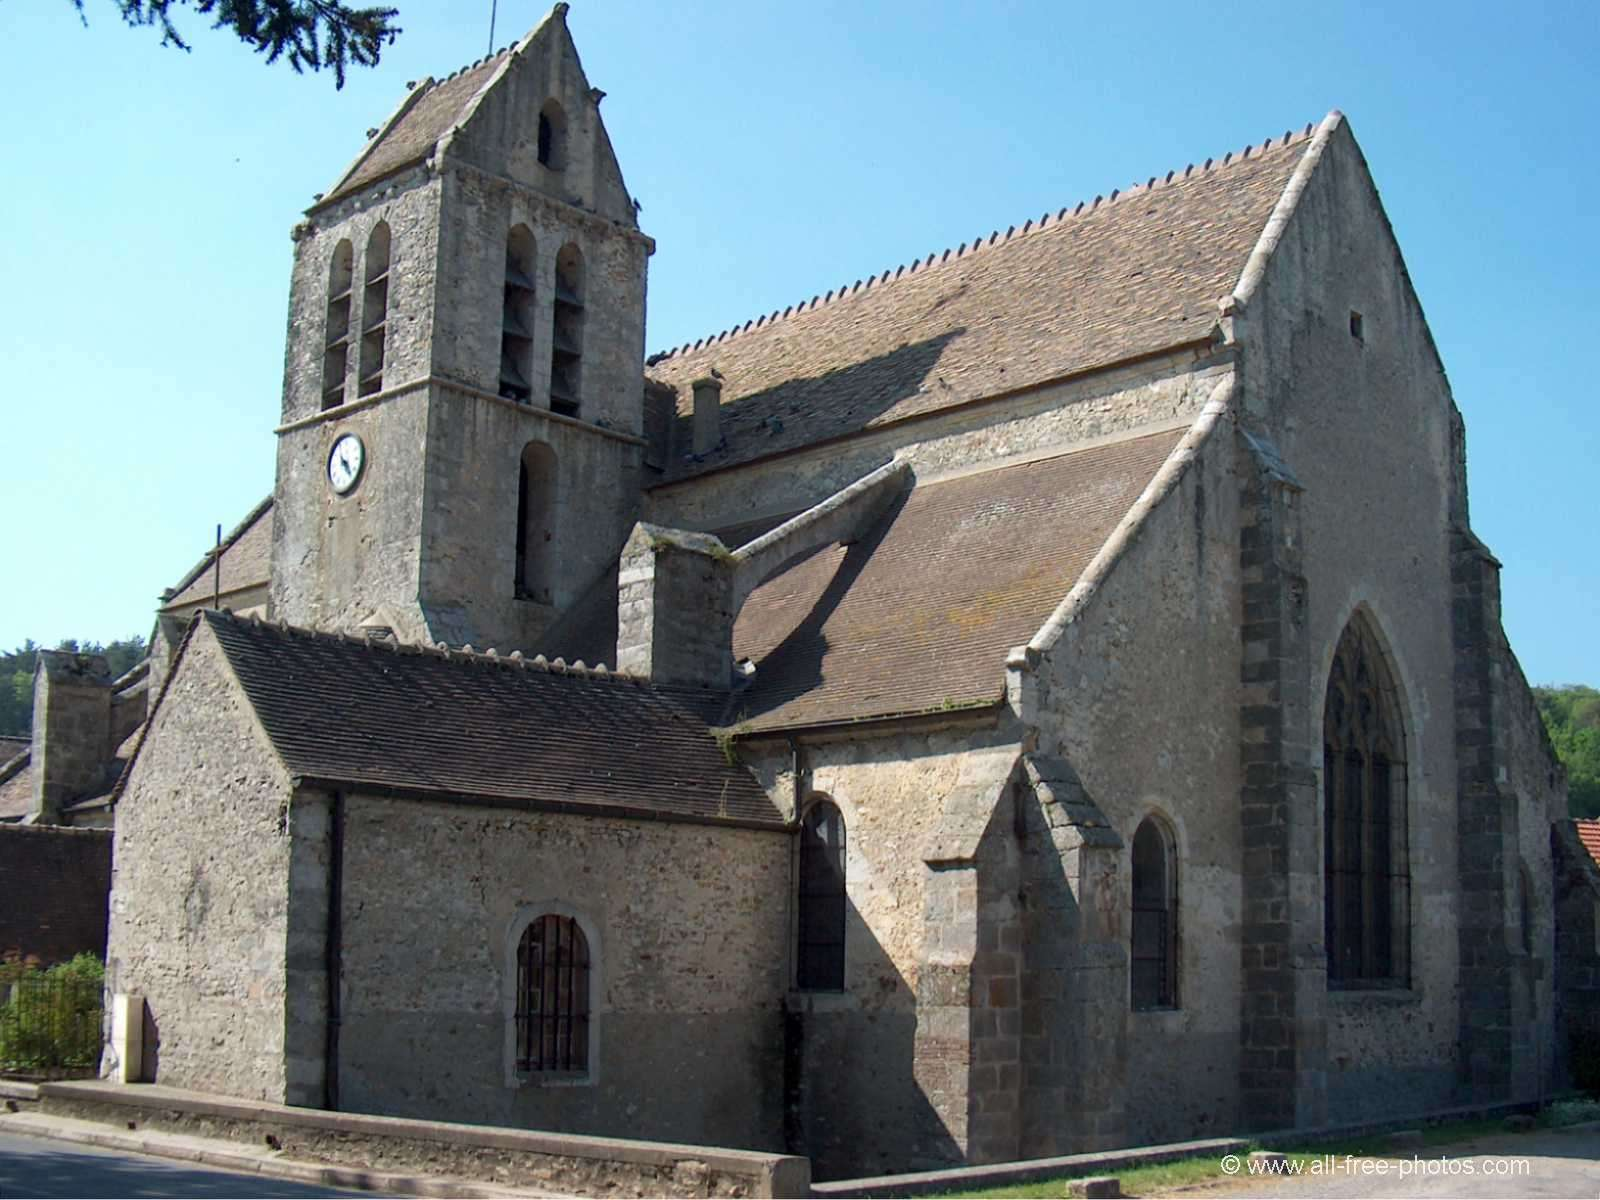 Eglise de Villeconin - France